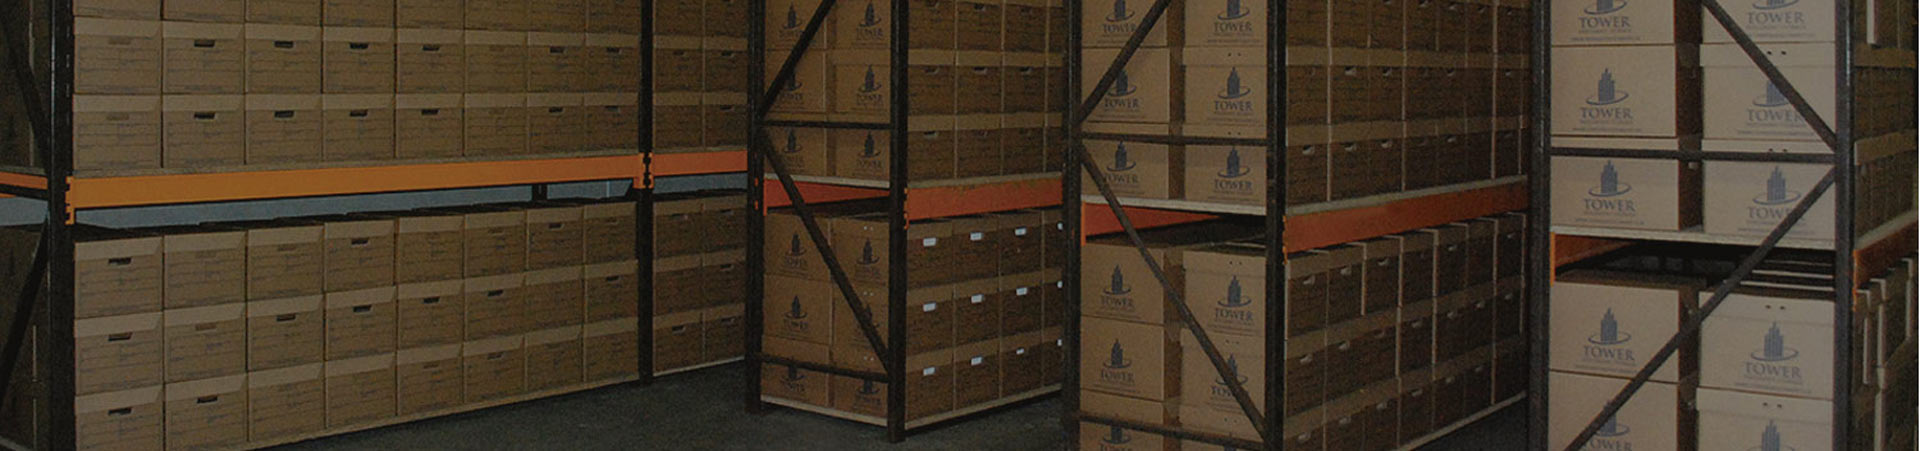 Tower Document Storage Secure Facilities